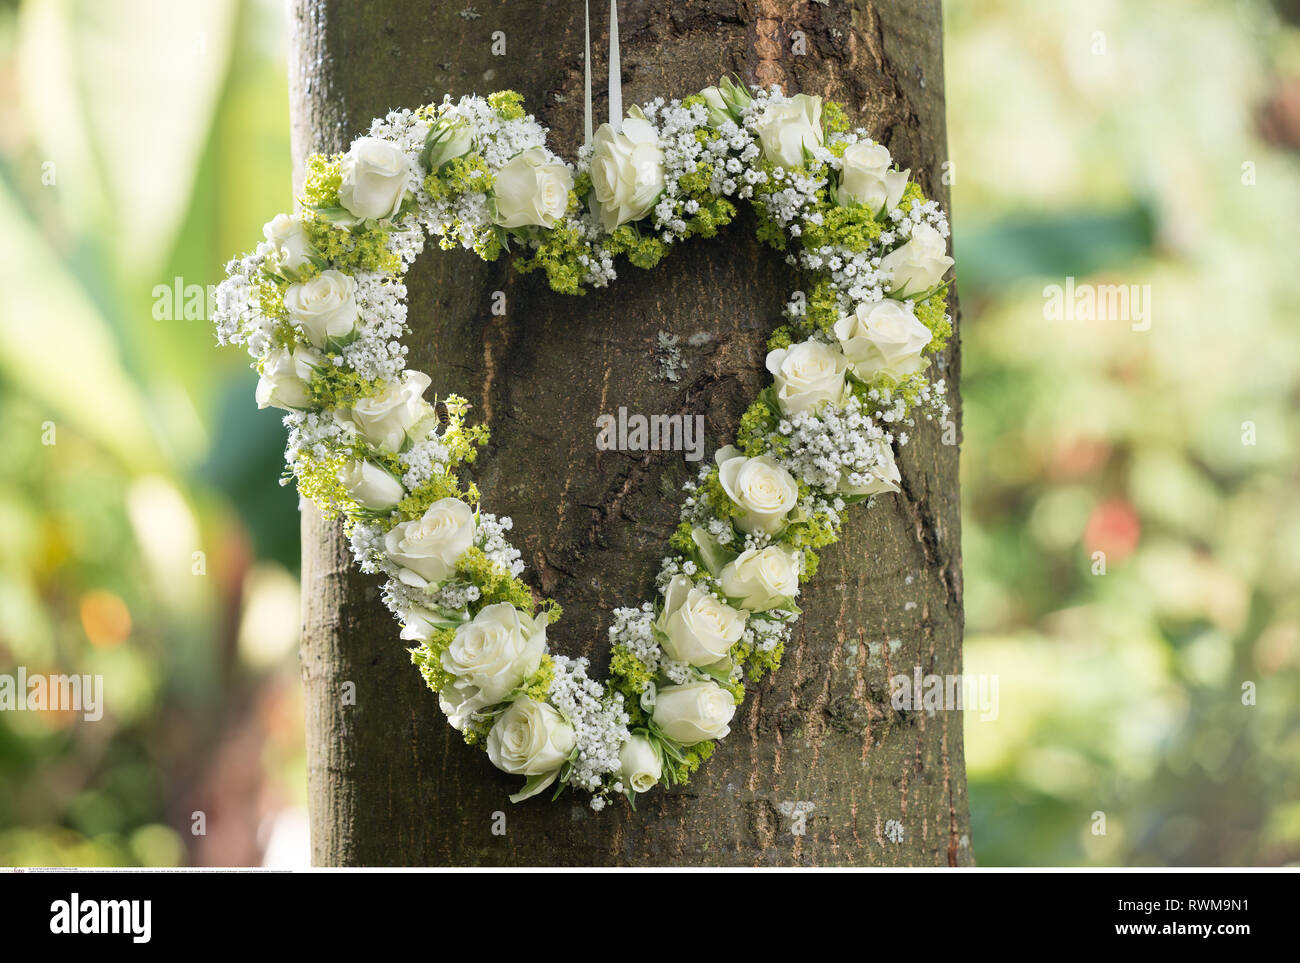 botany, heart with baby's breath and whitewa, Caution! For Greetingcard-Use / Postcard-Use In German Speaking Countries Certain Restrictions May Apply - Stock Image